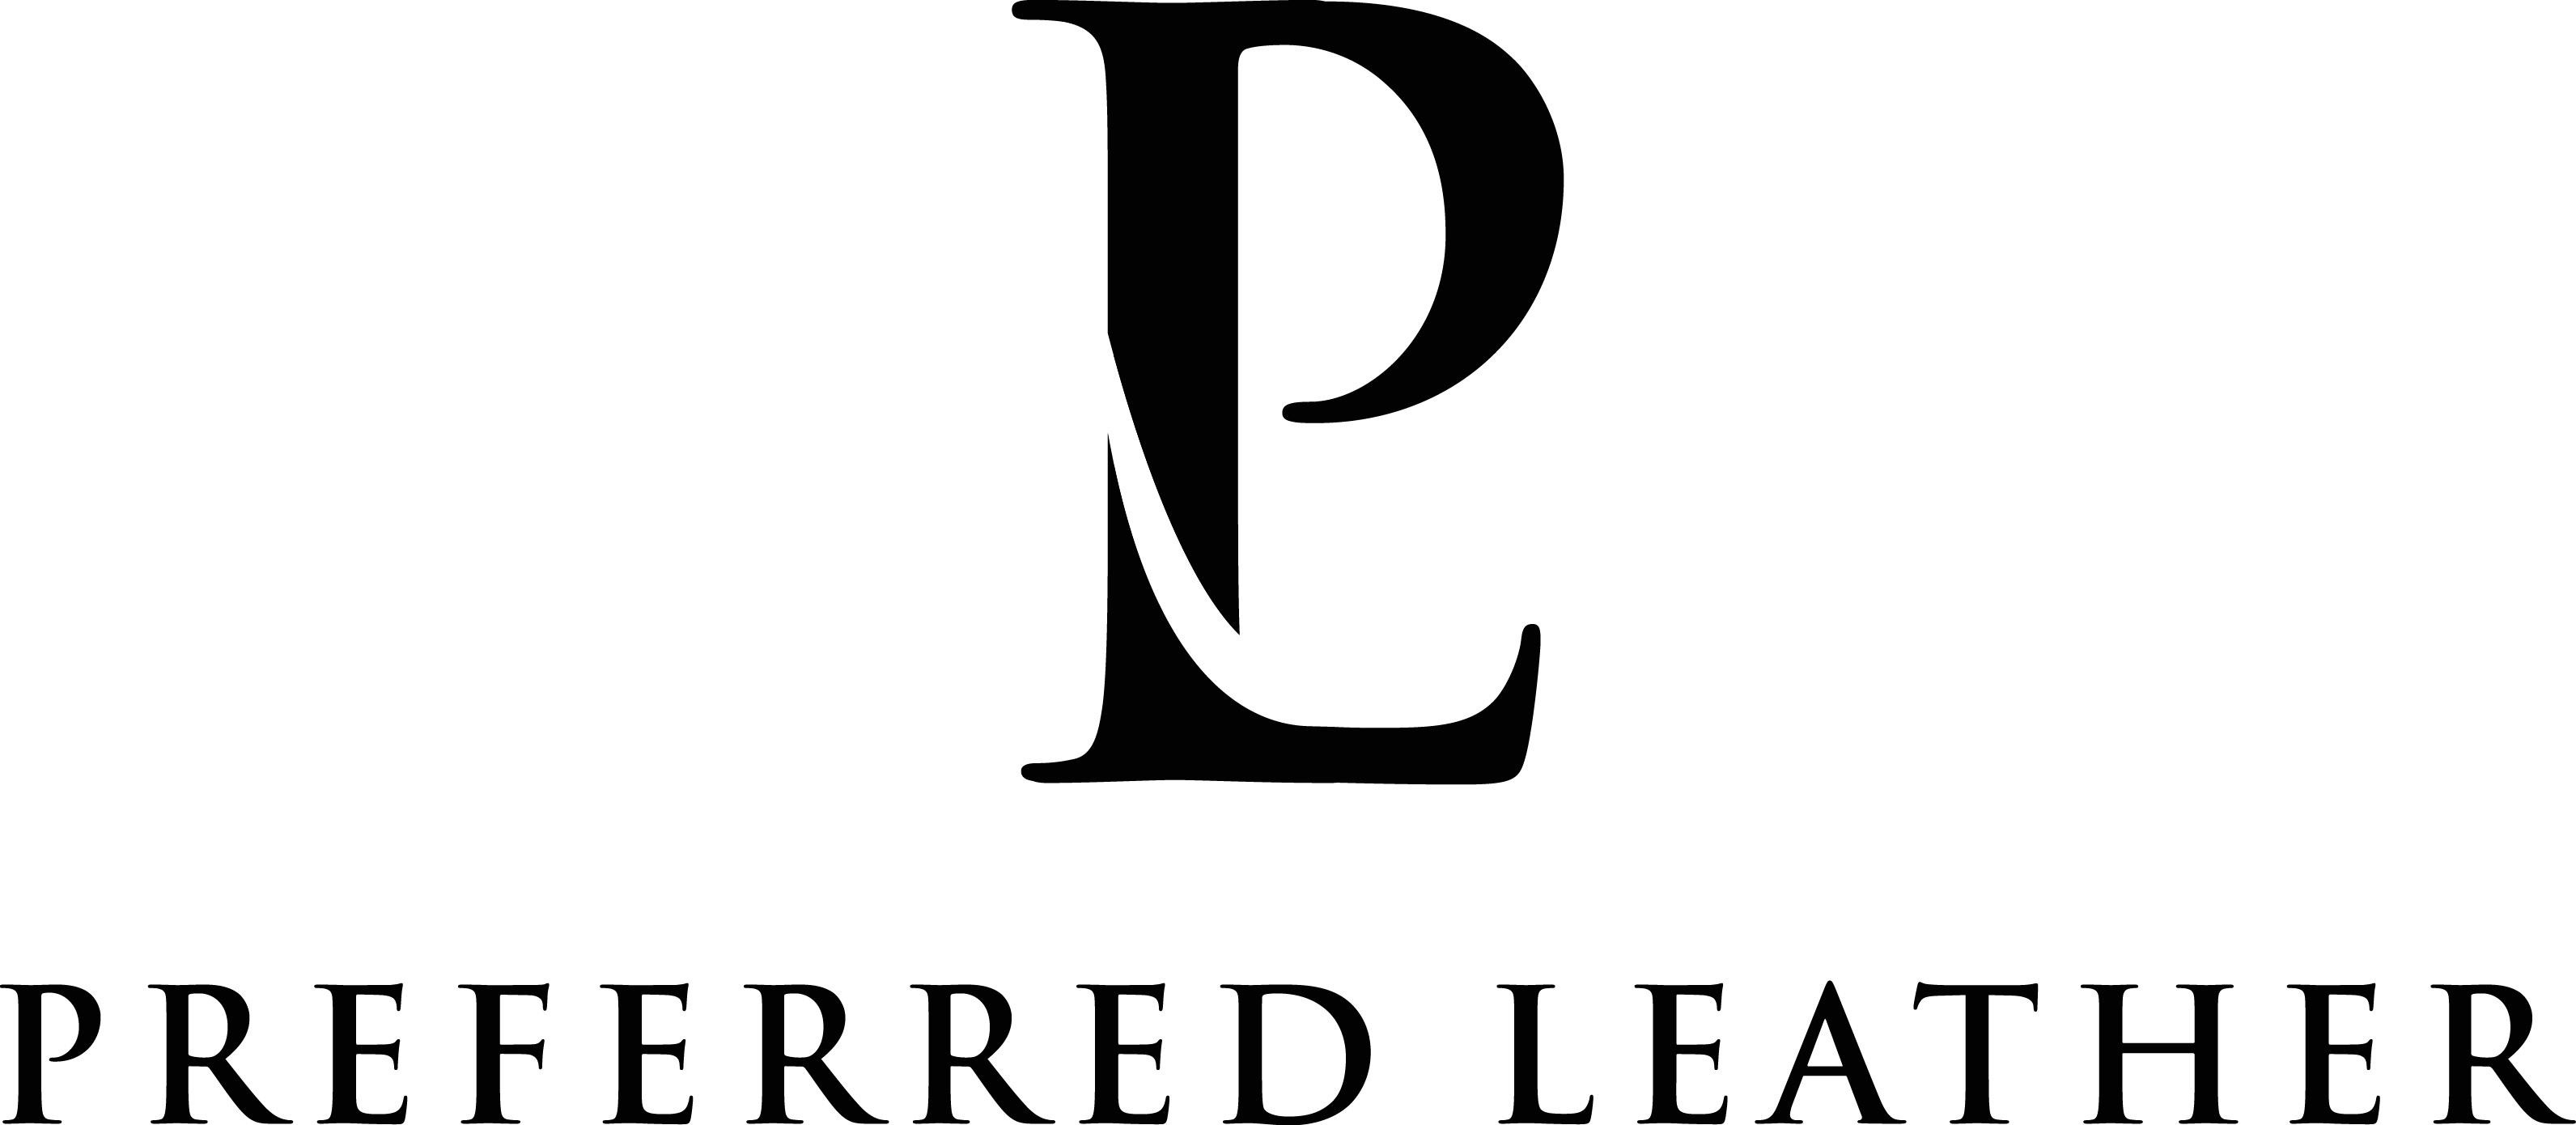 Preferred Leather needs a logo expressing quality and sophistication.